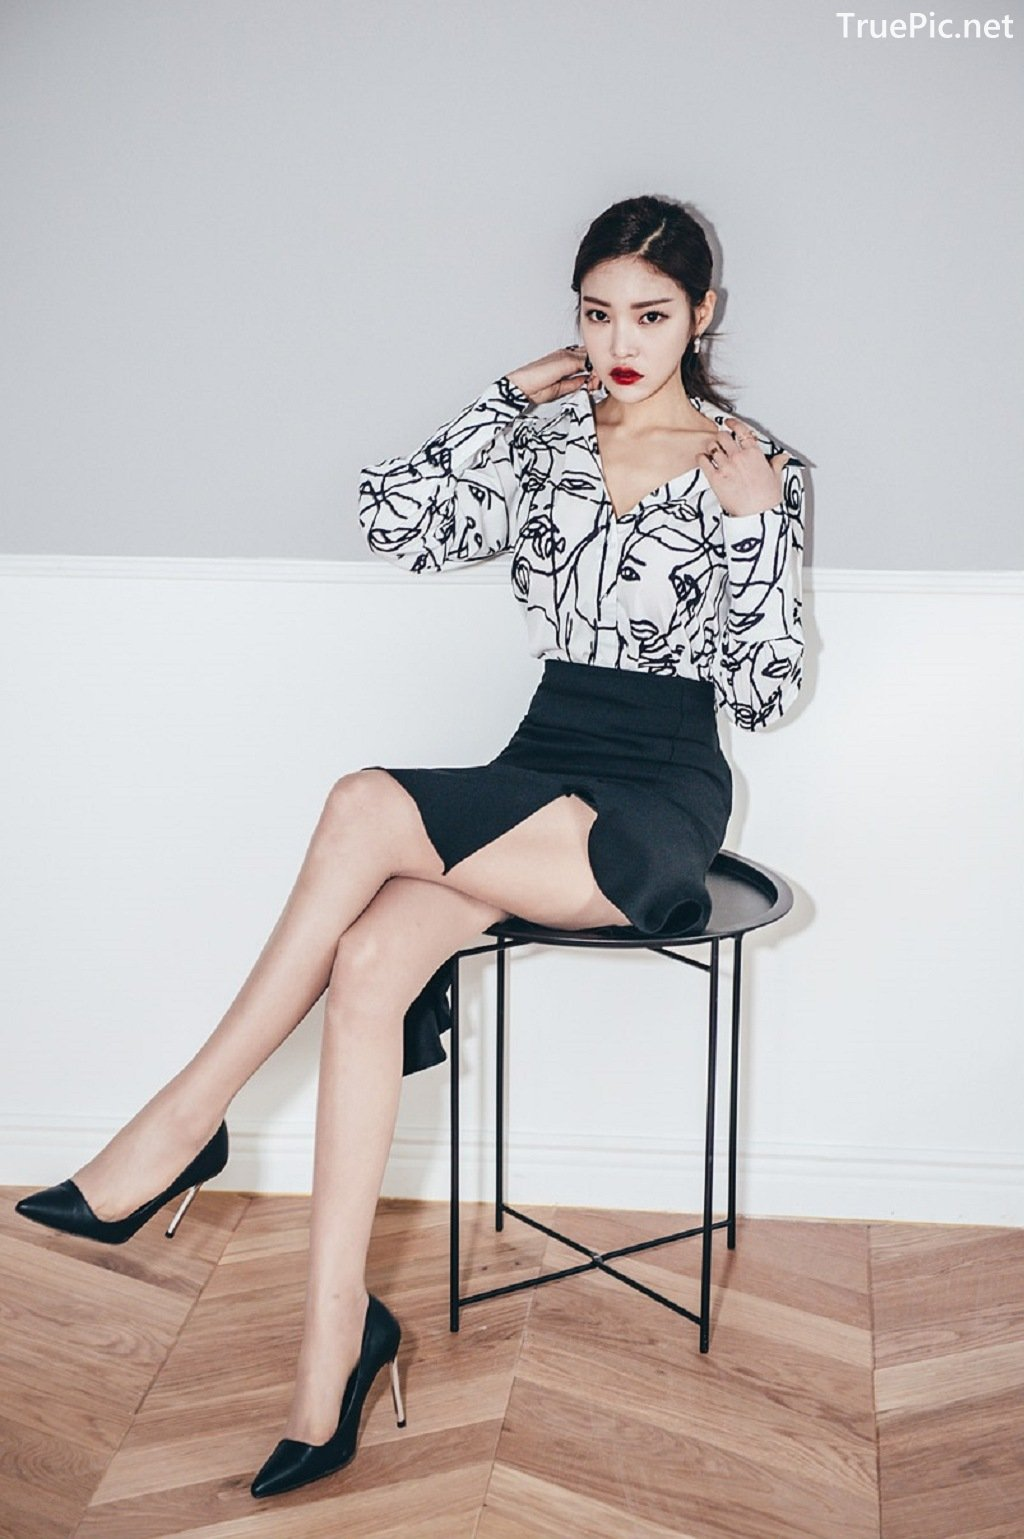 Image-Korean-Fashion-Model–Park-Jung-Yoon–Indoor-Photoshoot-Collection-2-TruePic.net- Picture-7